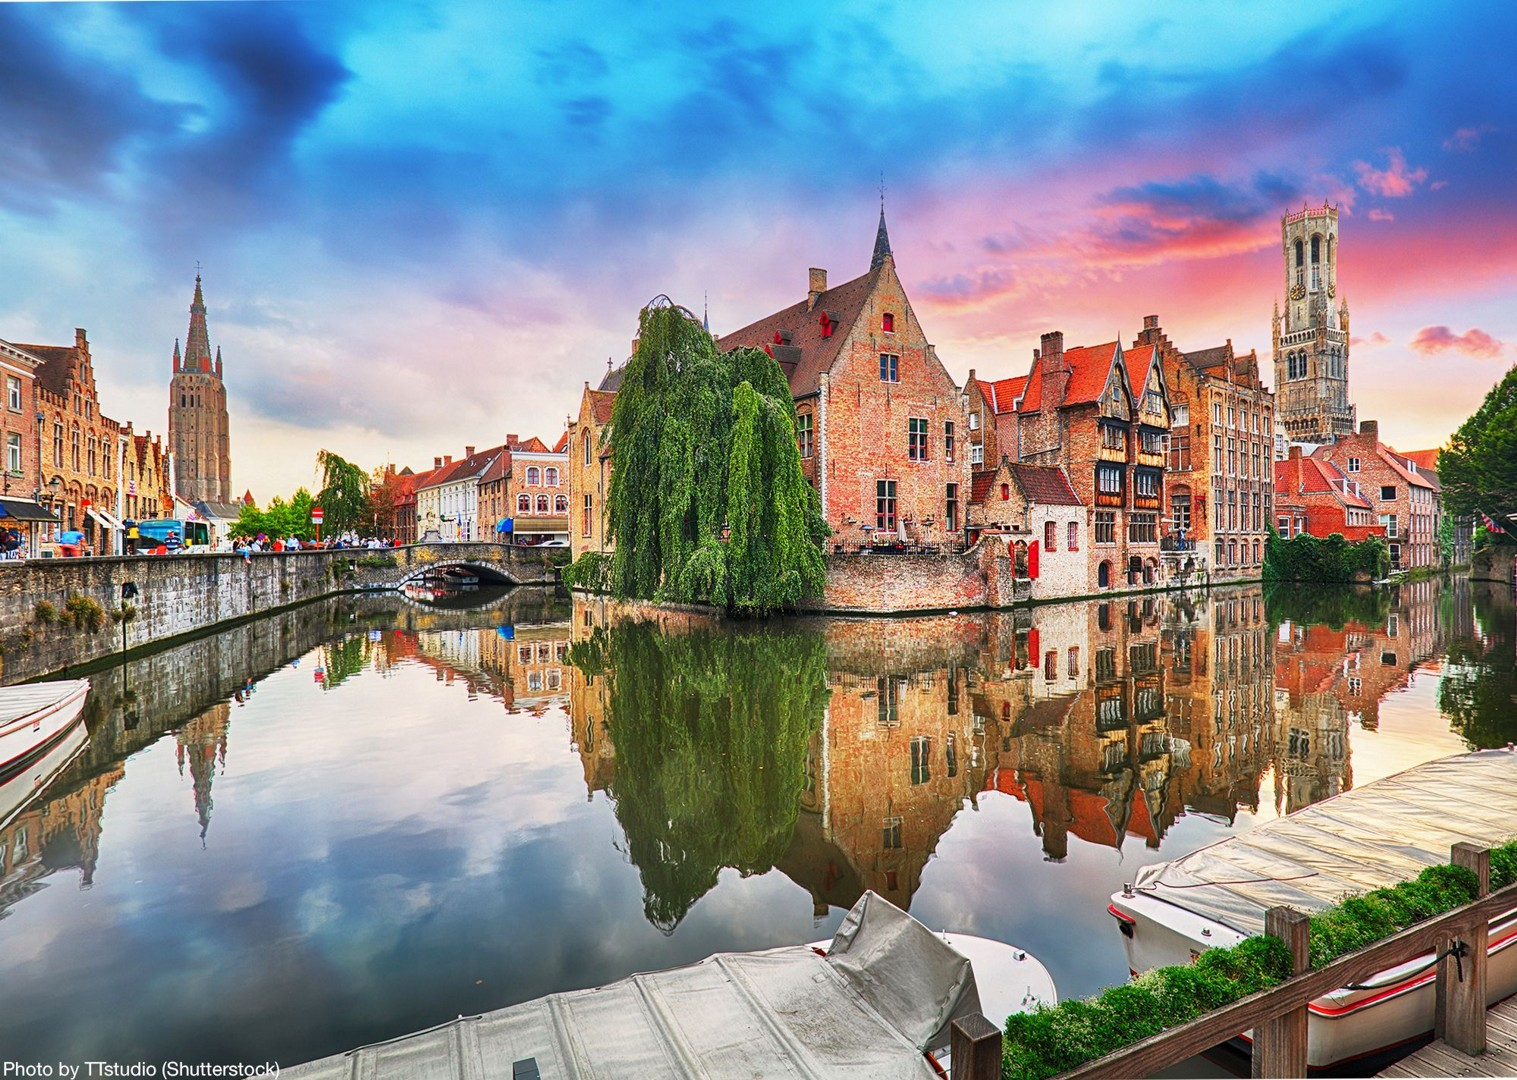 belfry-of-bruges-amsterdam-to-belgium-cycling-boat-tour.jpg - Holland and Belgium - Amsterdam to Bruges - Leisure Cycling